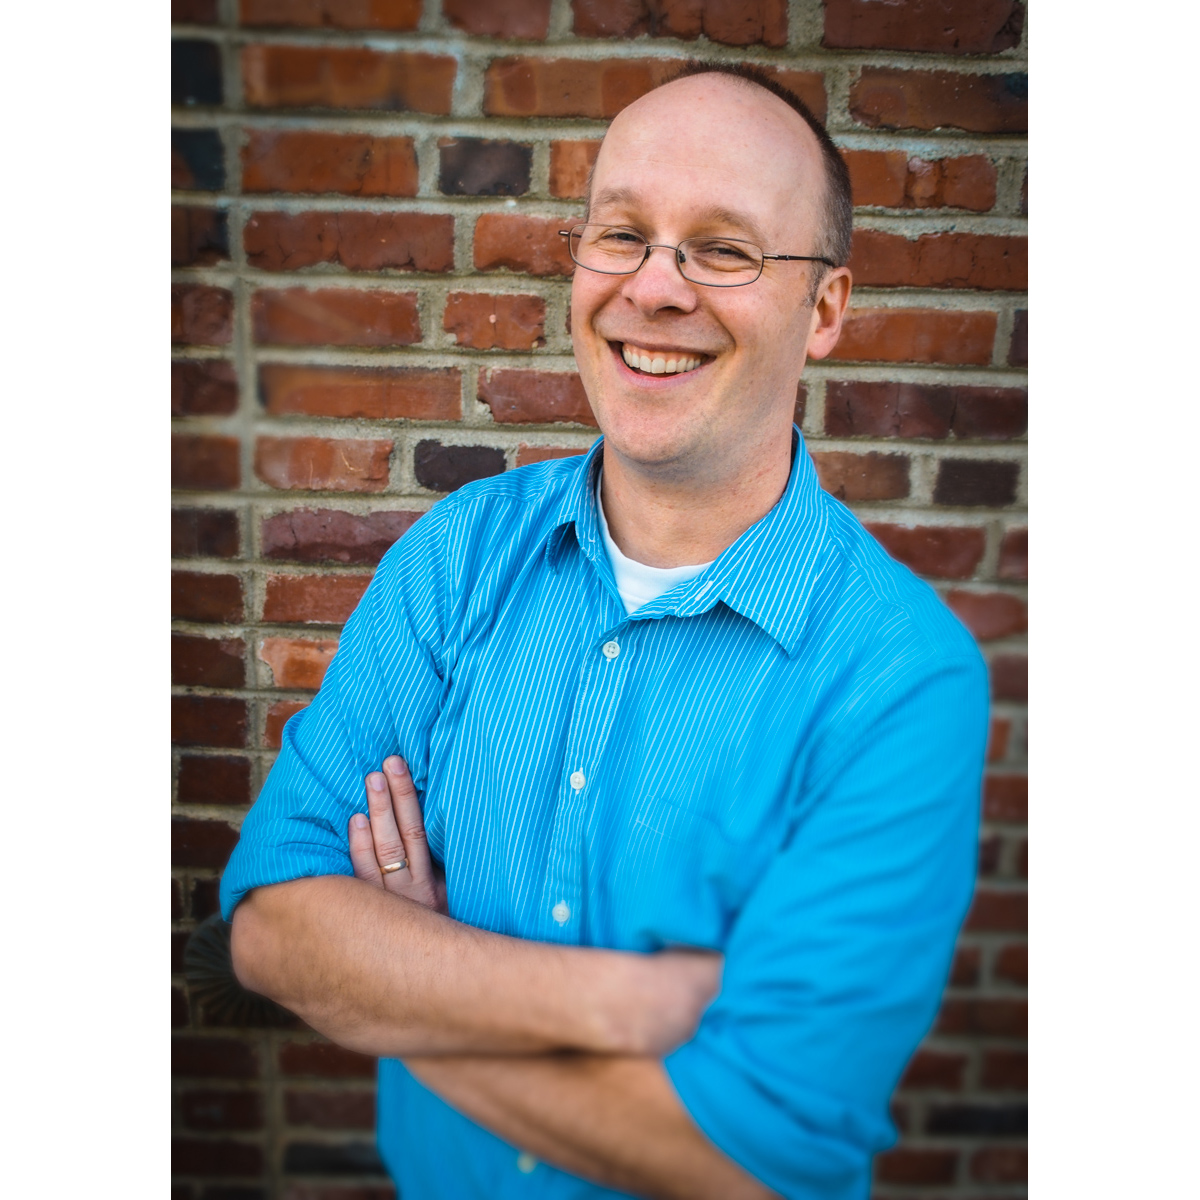 environmental portrait of professional man with glasses in blue shirt against brick wall